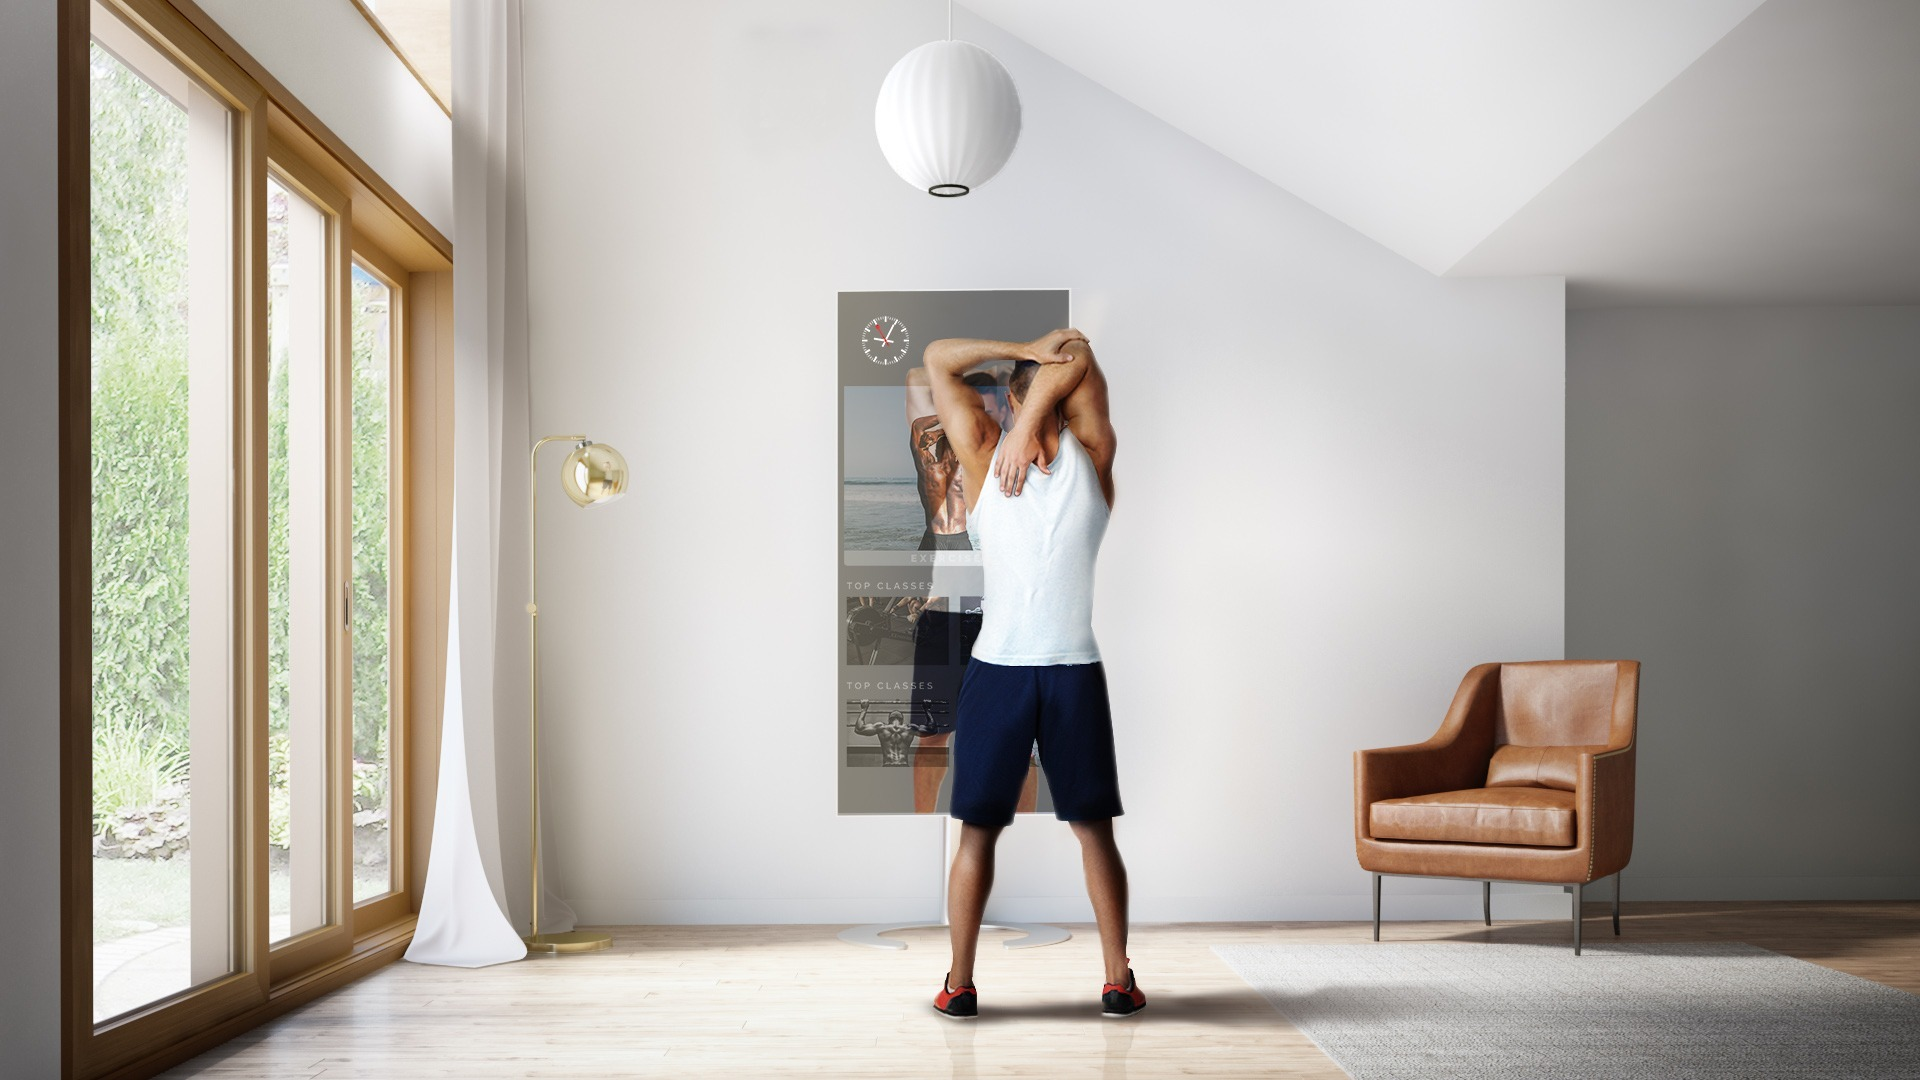 A man stretching in front of QAIO Flex Fitness Mirror